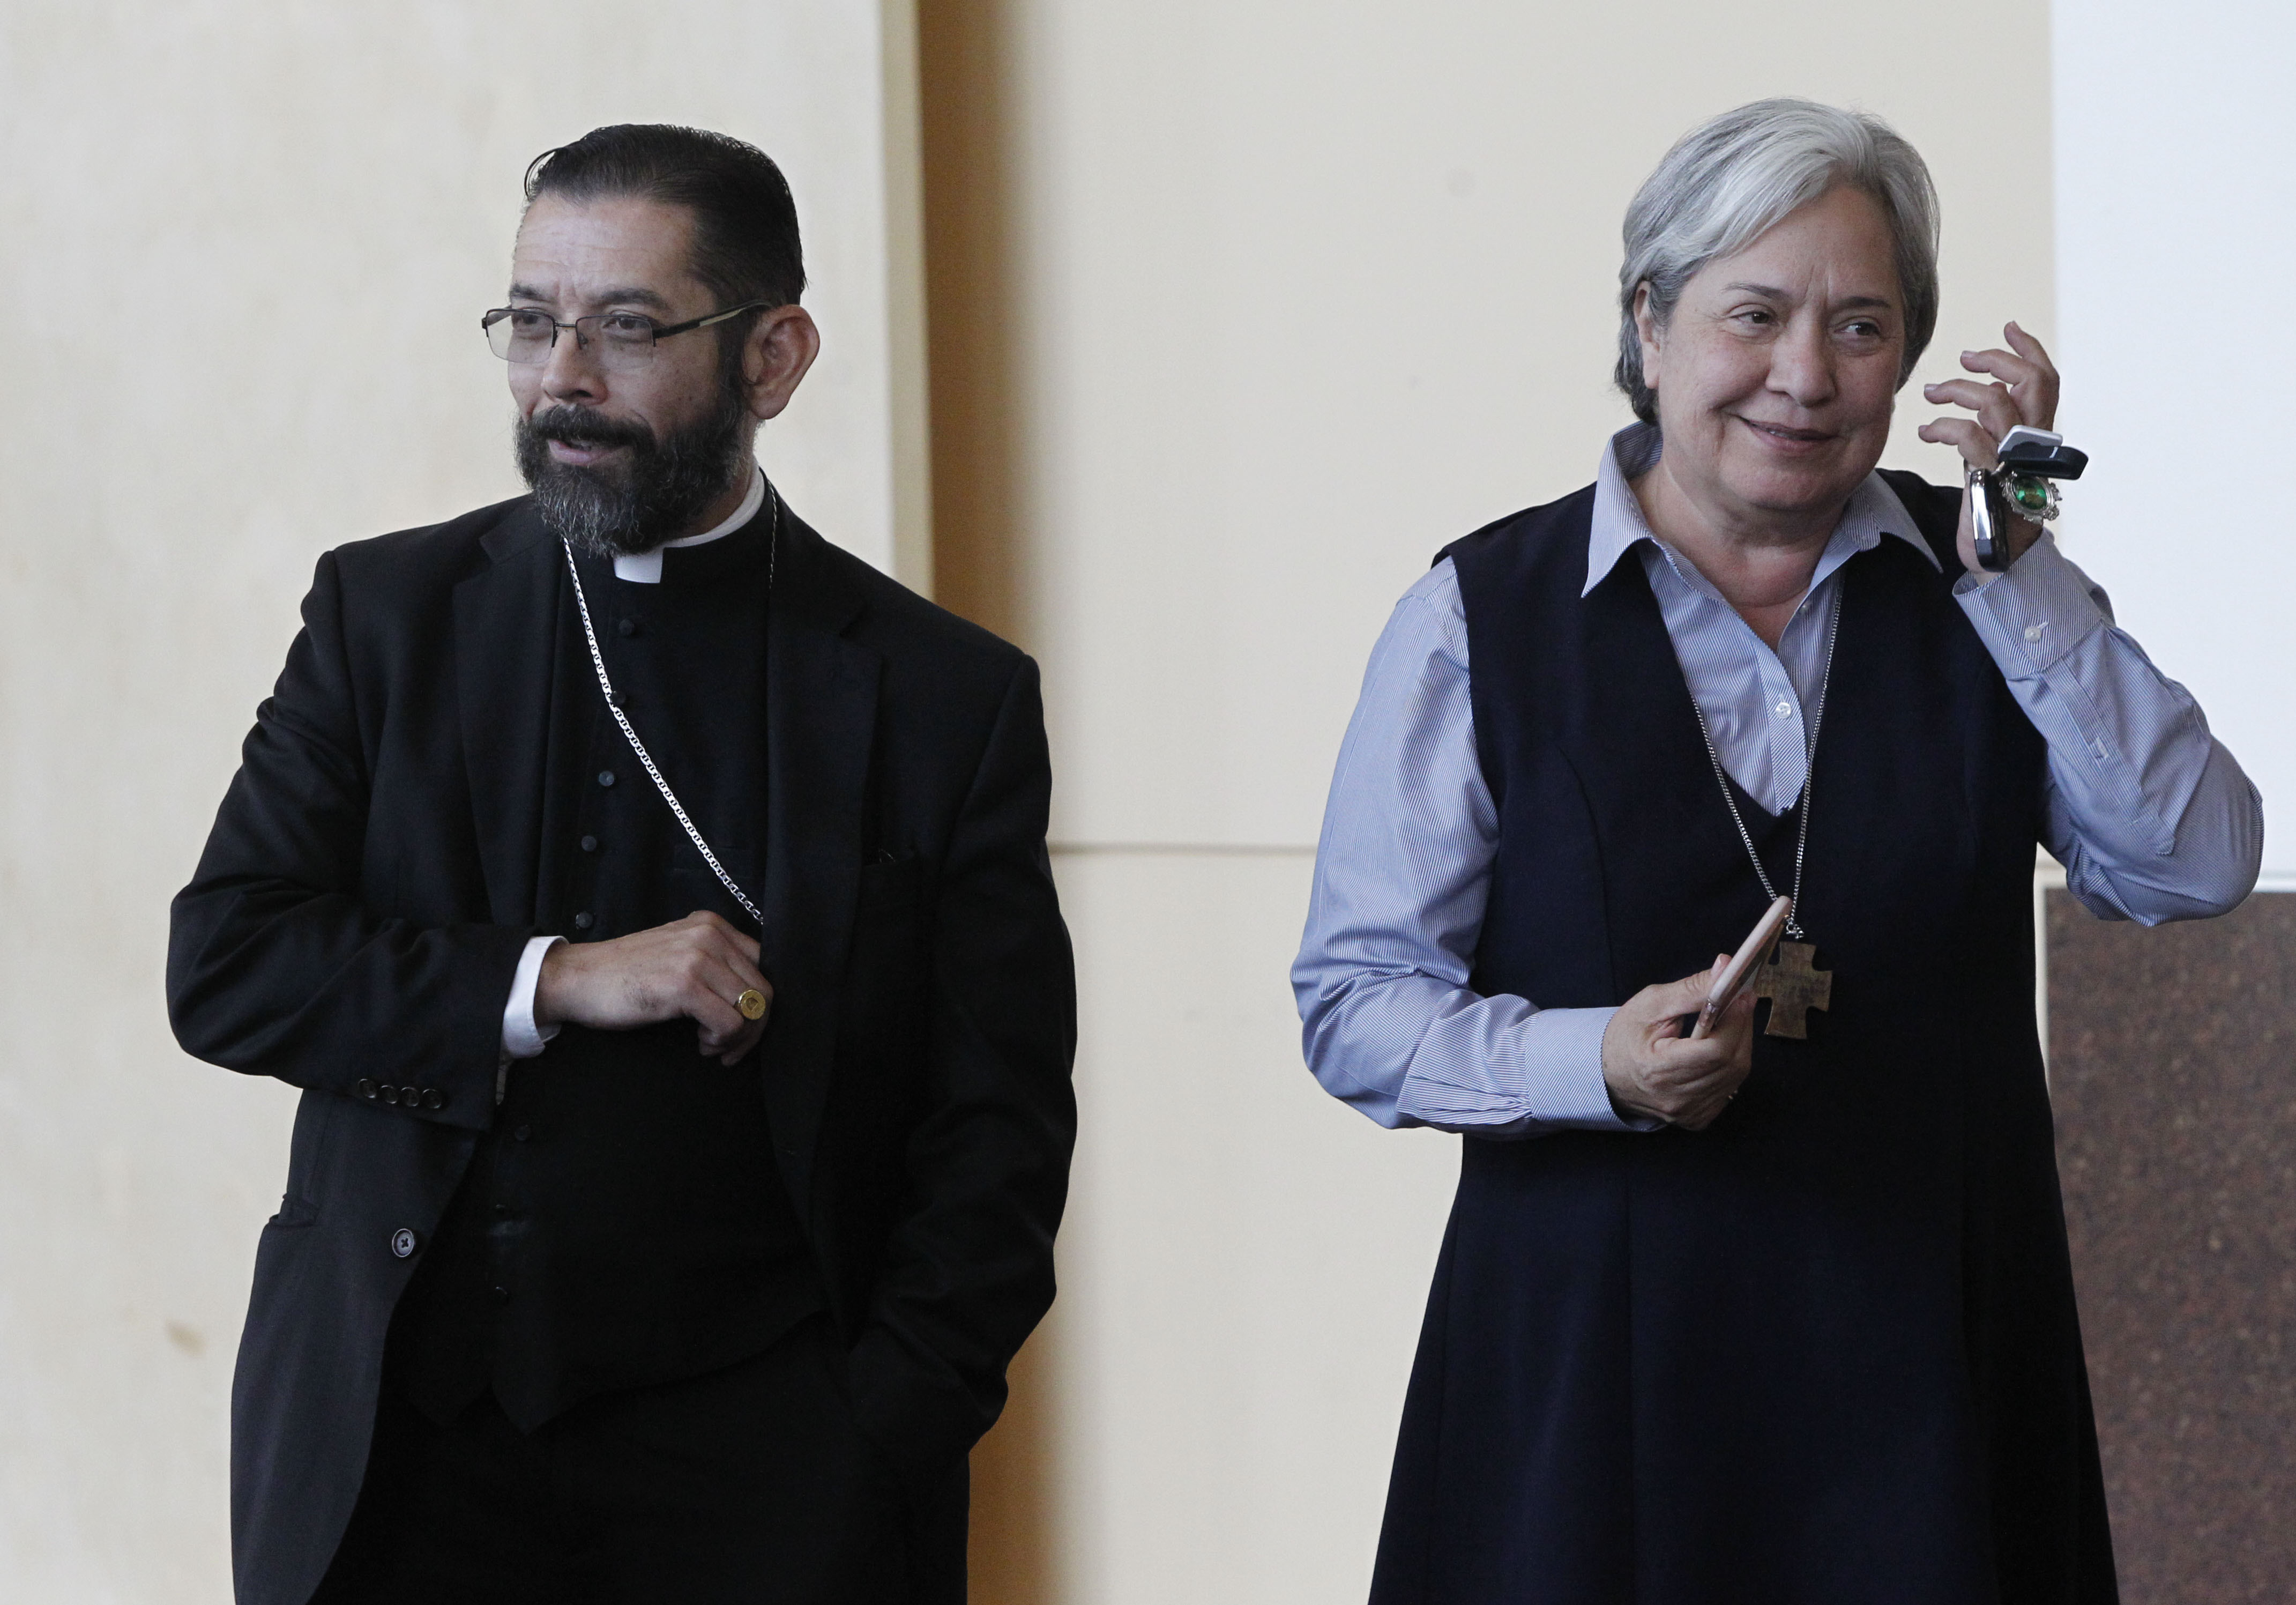 Bishop Daniel E. Flores and sister Norma Pimentel, pictured in this 2017 file photo in McAllen, Texas.